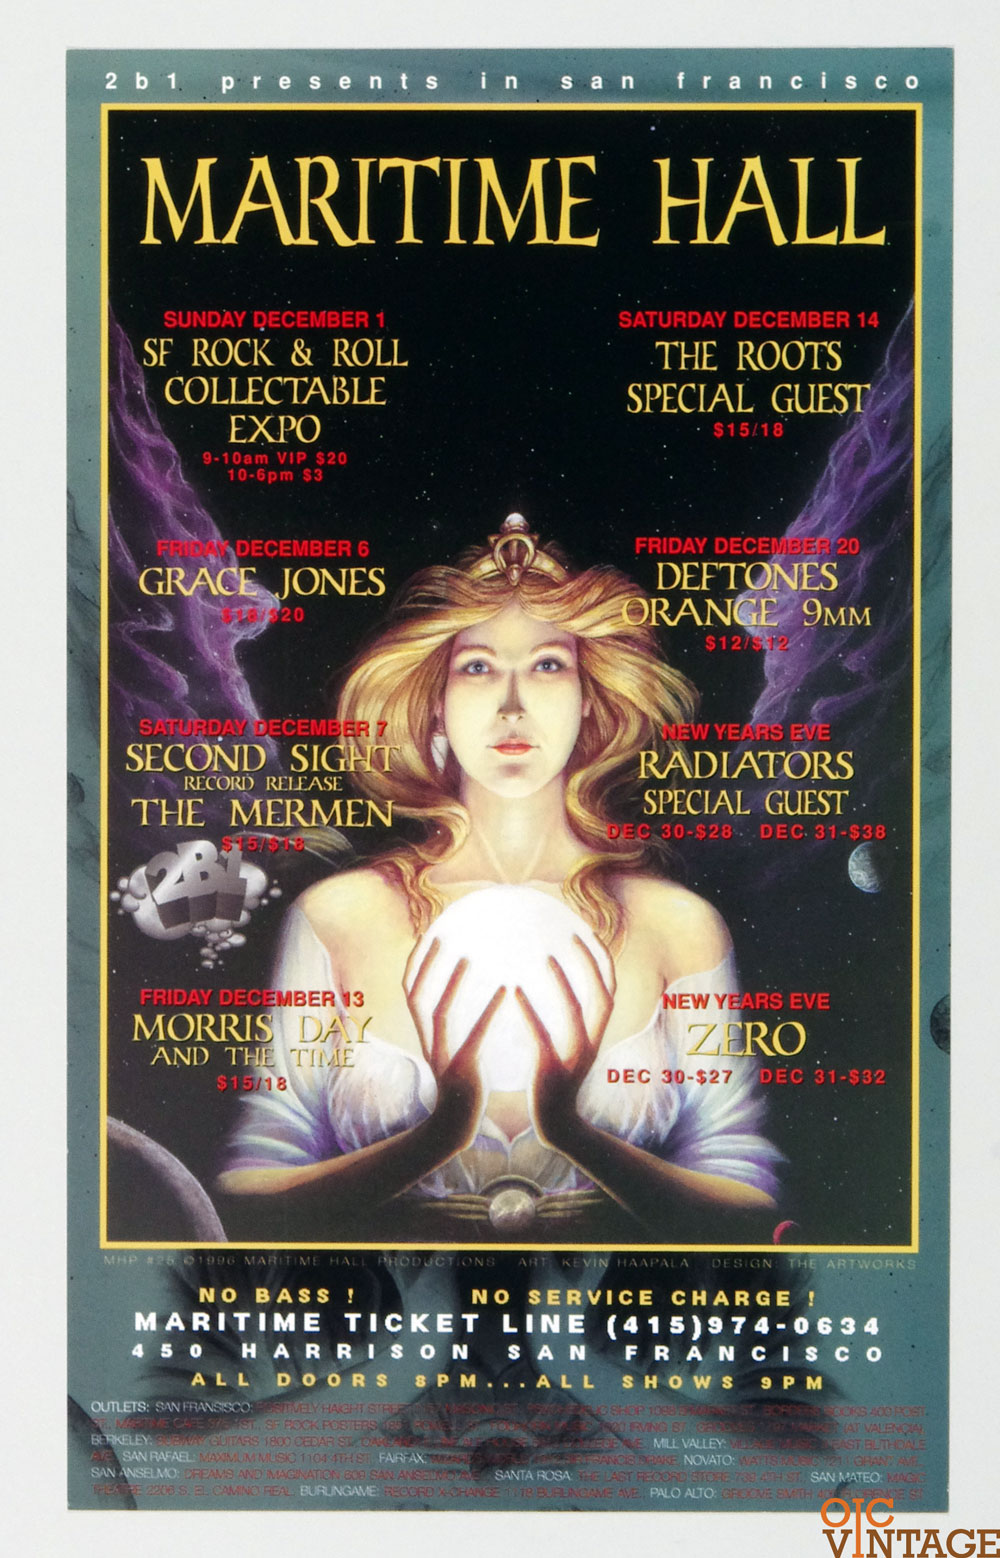 Maritime Hall 1996 Dec Poster The Roots Deftones Orange Radiators Zero